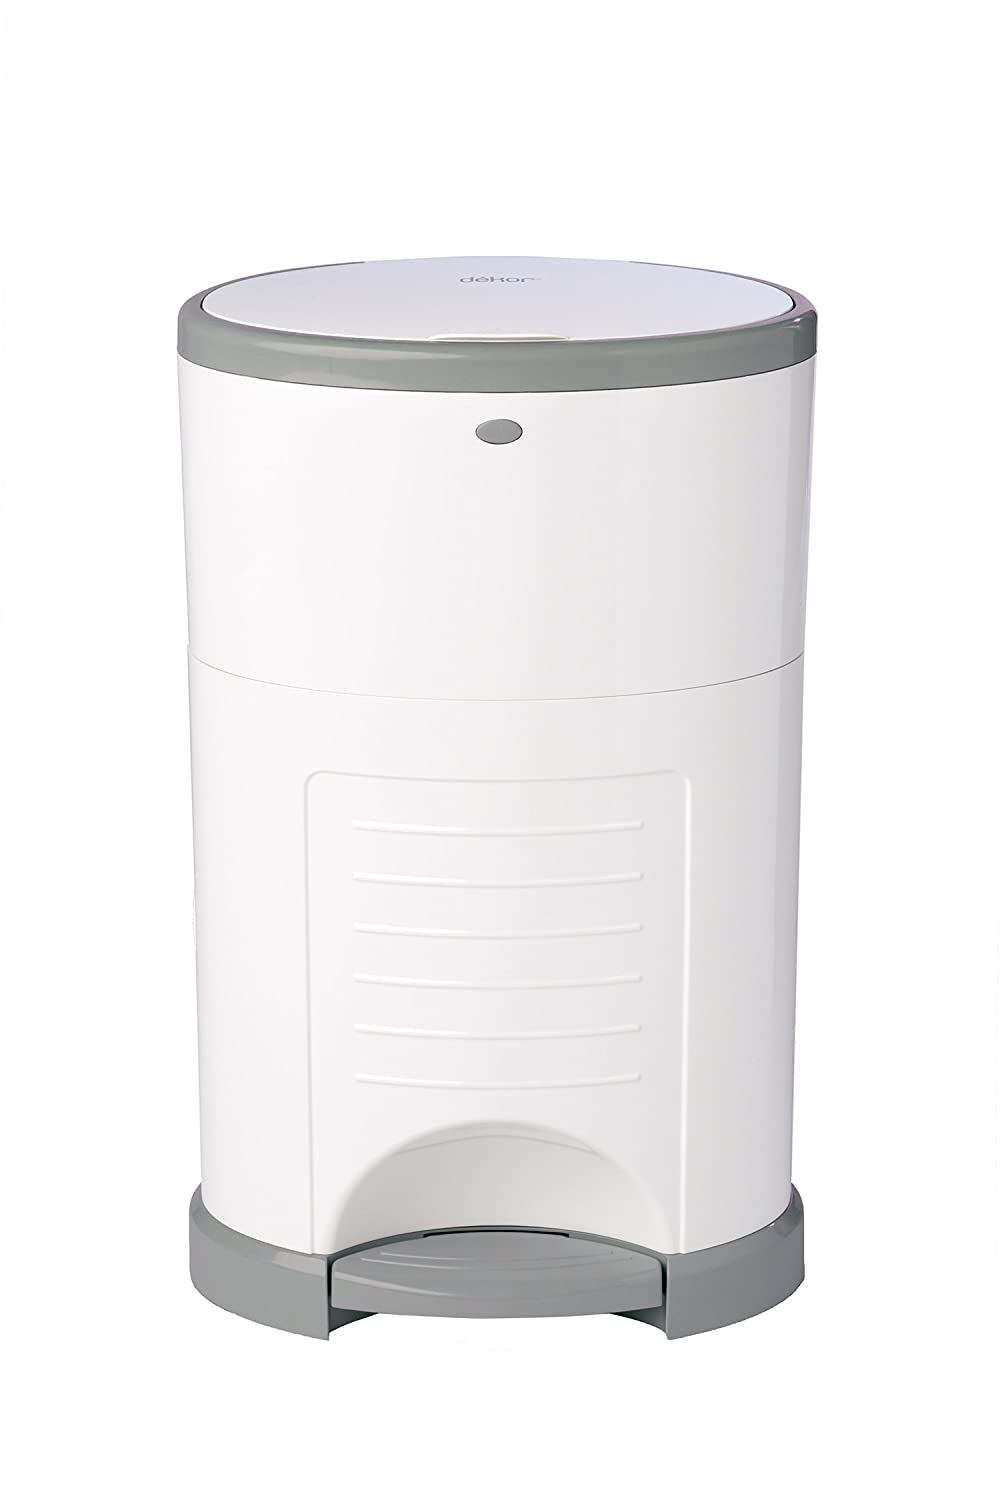 Diaper Dekor Diaper Disposal System